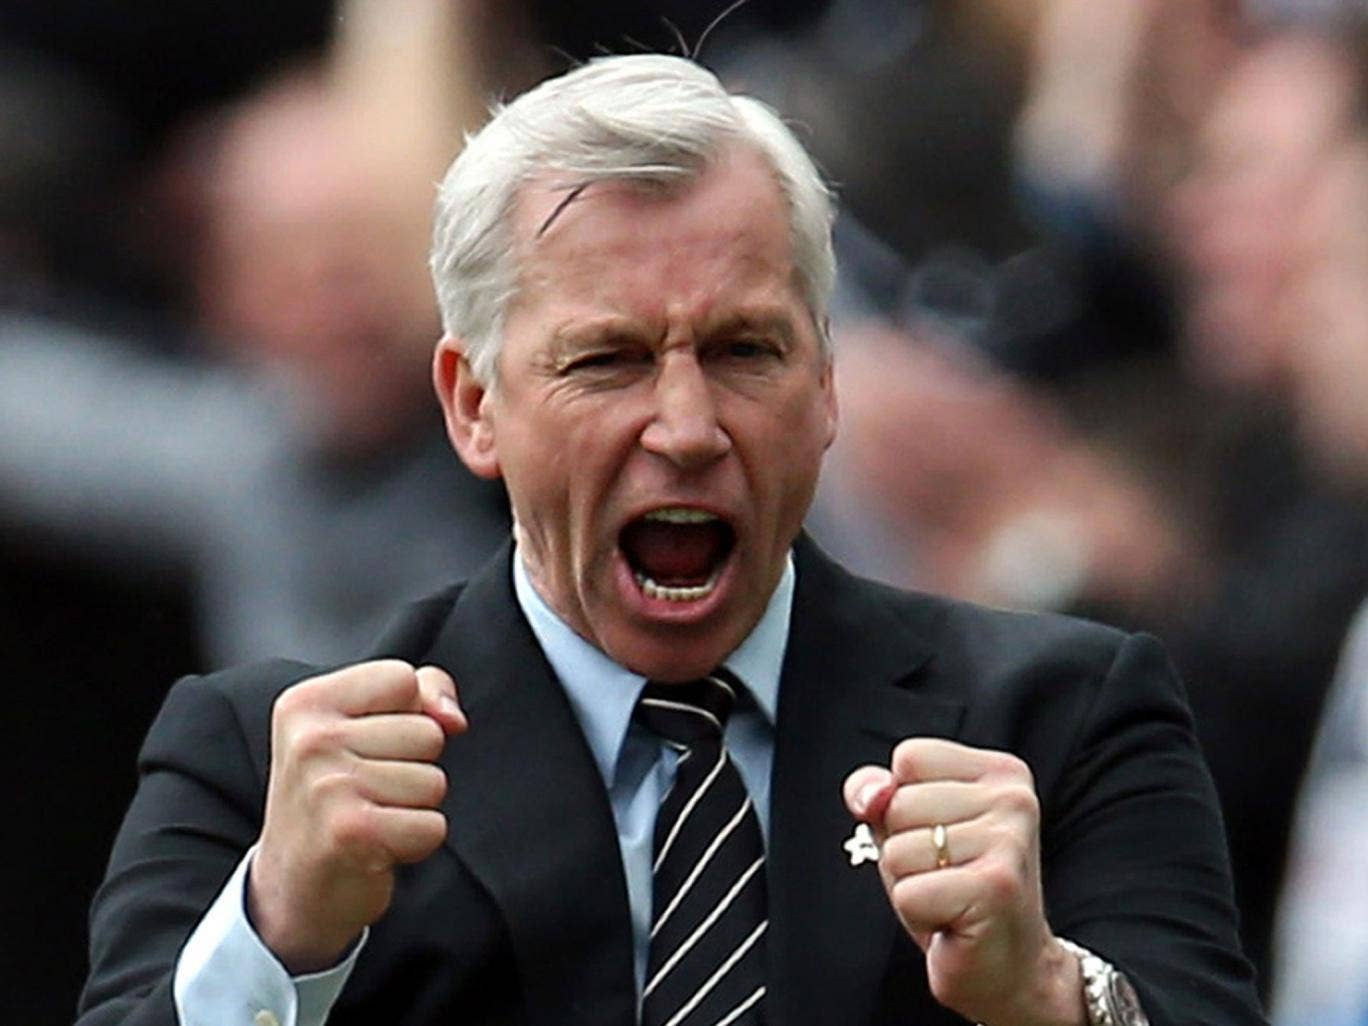 Alan Pardew: 'I'm my own man and will manage this club to best of my ability'